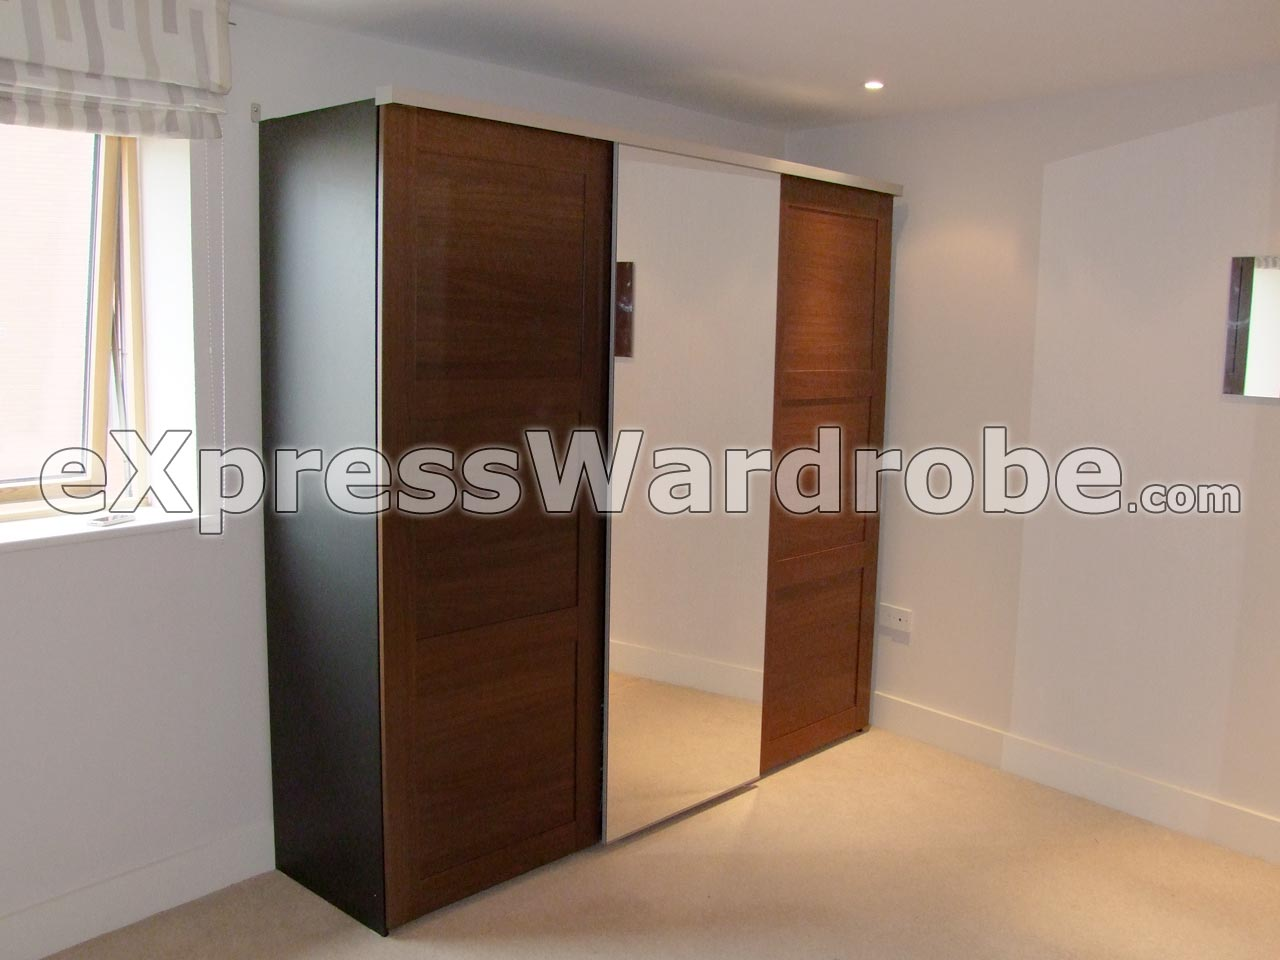 Ikea Fyndig Kitchen Reviews ~ Wardrobes  Flat pack Wardrobes  Sliding Door Wardrobes  Free